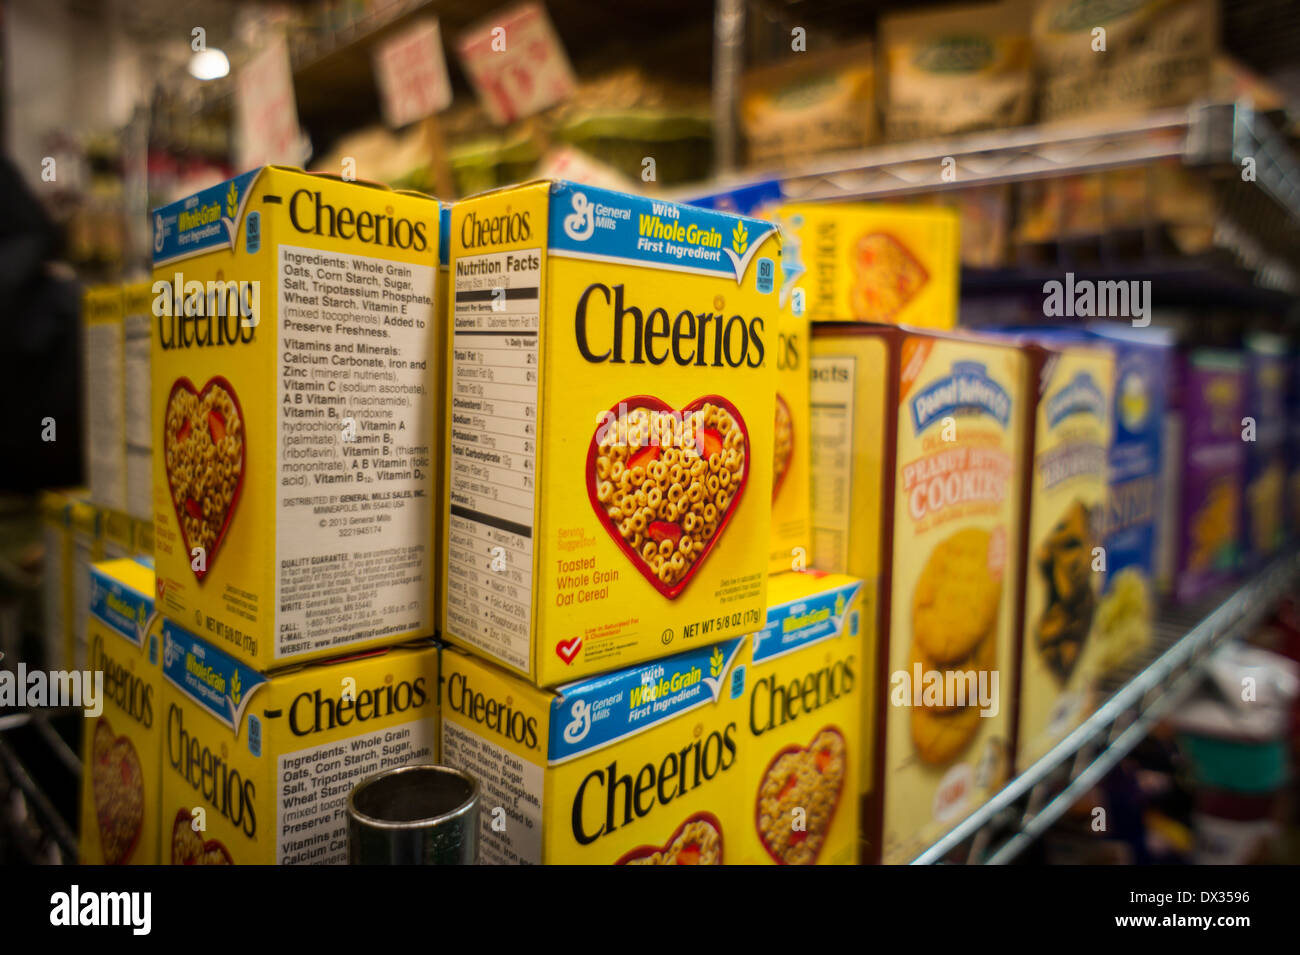 Single-serving breakfast sized boxes of General Mills Cheerios breakfast cereal in a grocery store in New York - Stock Image